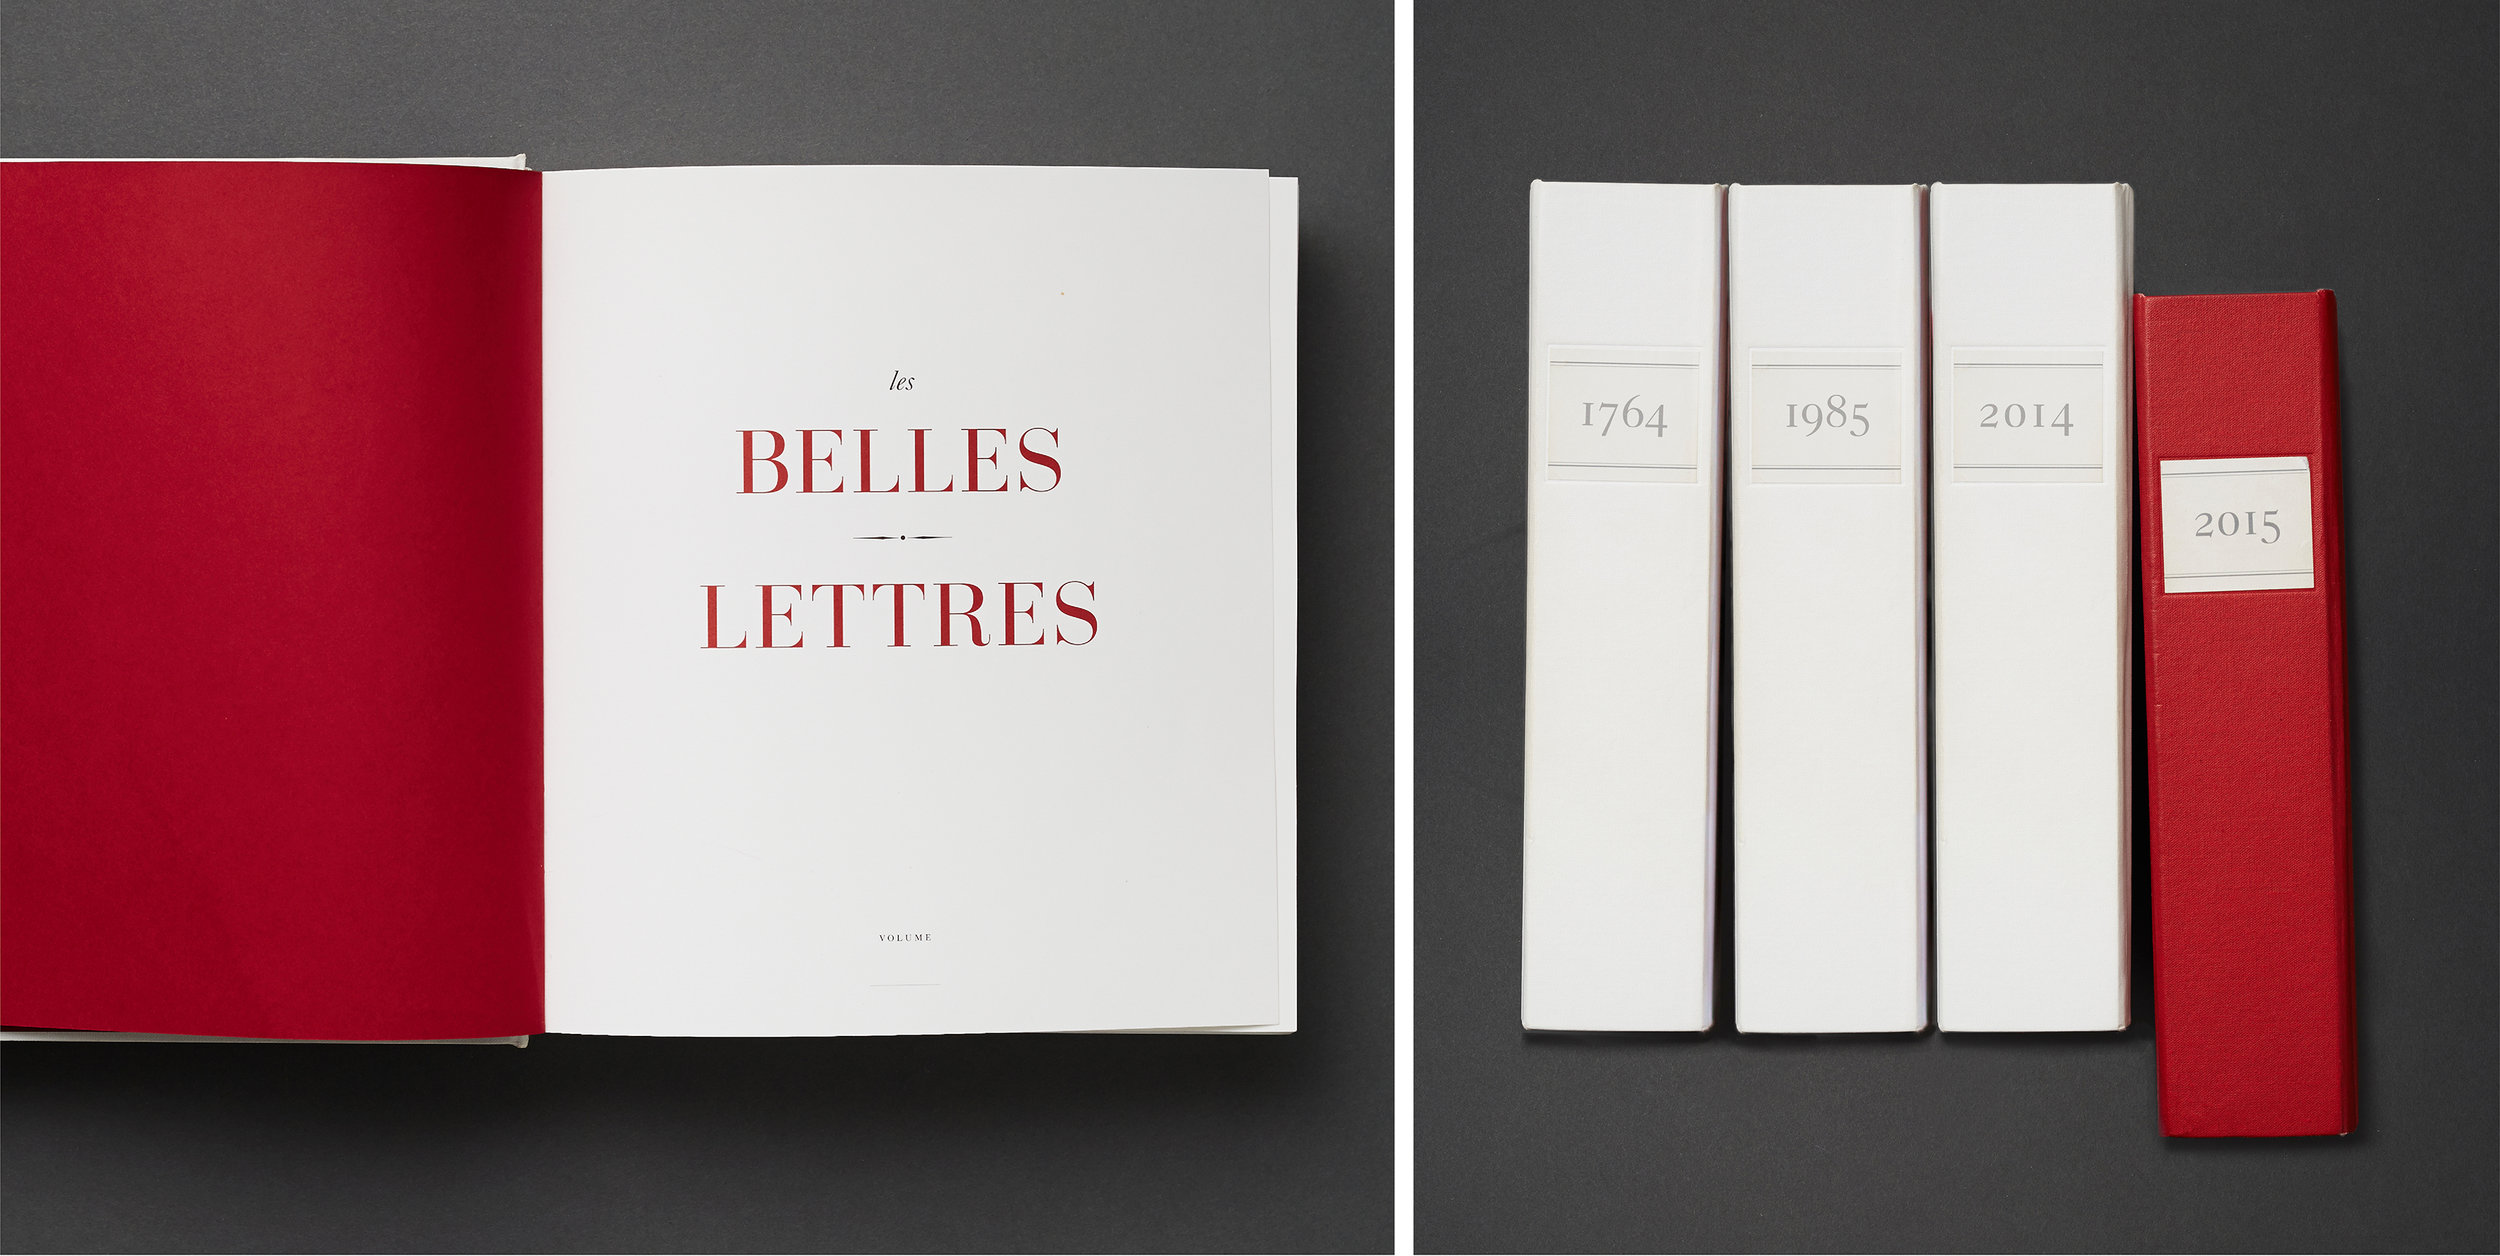 "Les Belles lettres. A series of 250 books in the library of the Grand Salon. 249 white books for each year that Baccarat exists and one red book for the year the hotel opened. Once you turn the title page, all inside pages are blank with just a page number. Guests and visitors can leave each other secret messages….""check out 1951 page 78….."